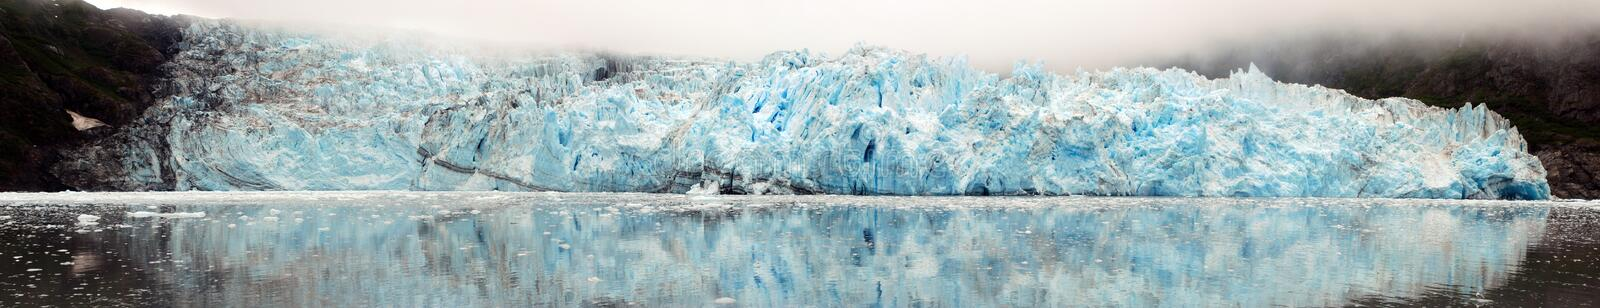 Download Glacier Reflecting On Sea Royalty Free Stock Photos - Image: 16088918